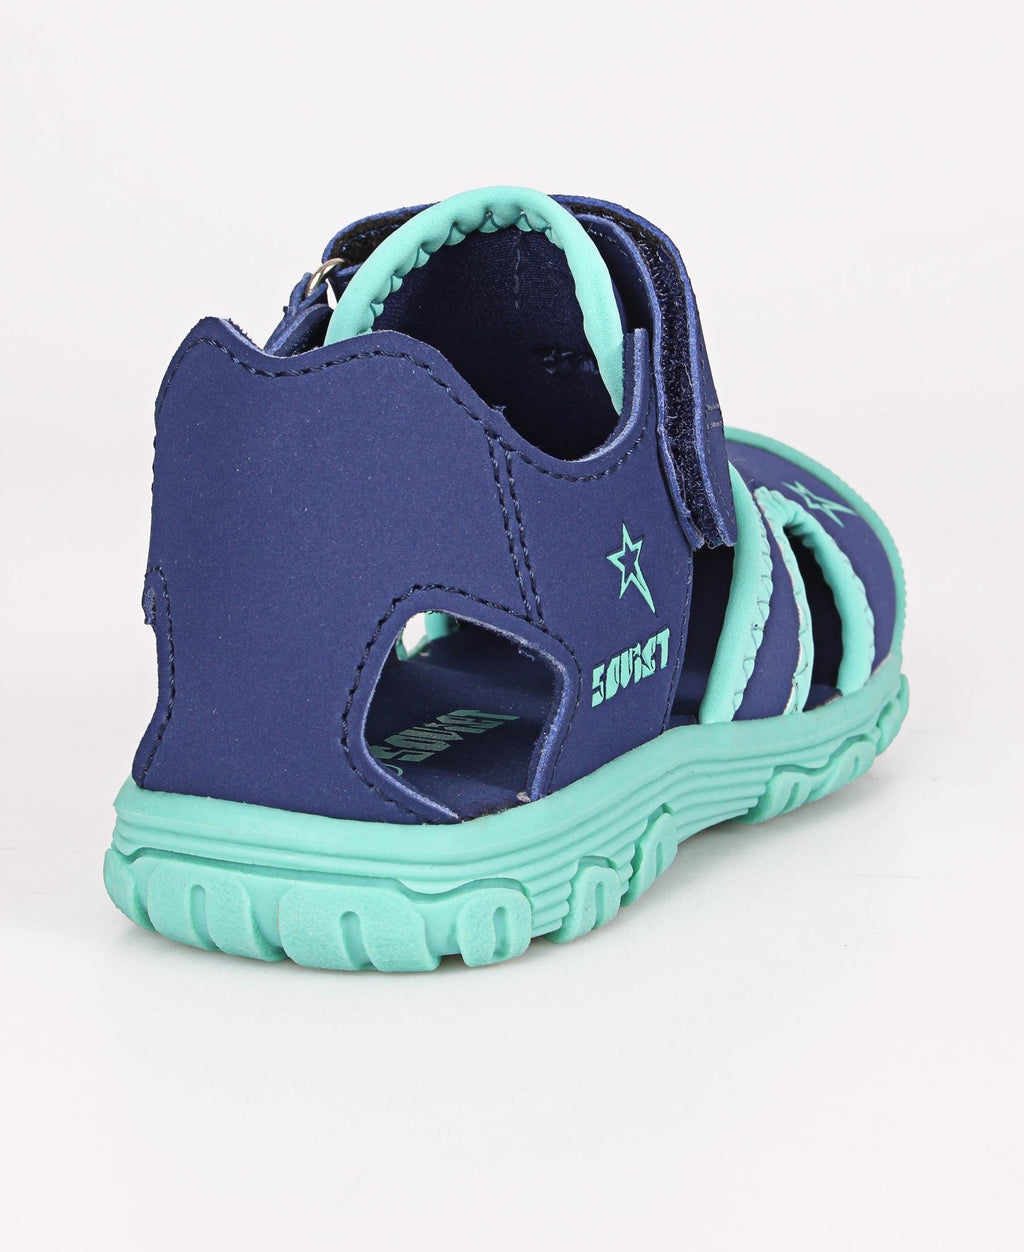 Kids Tate Sandals - Navy